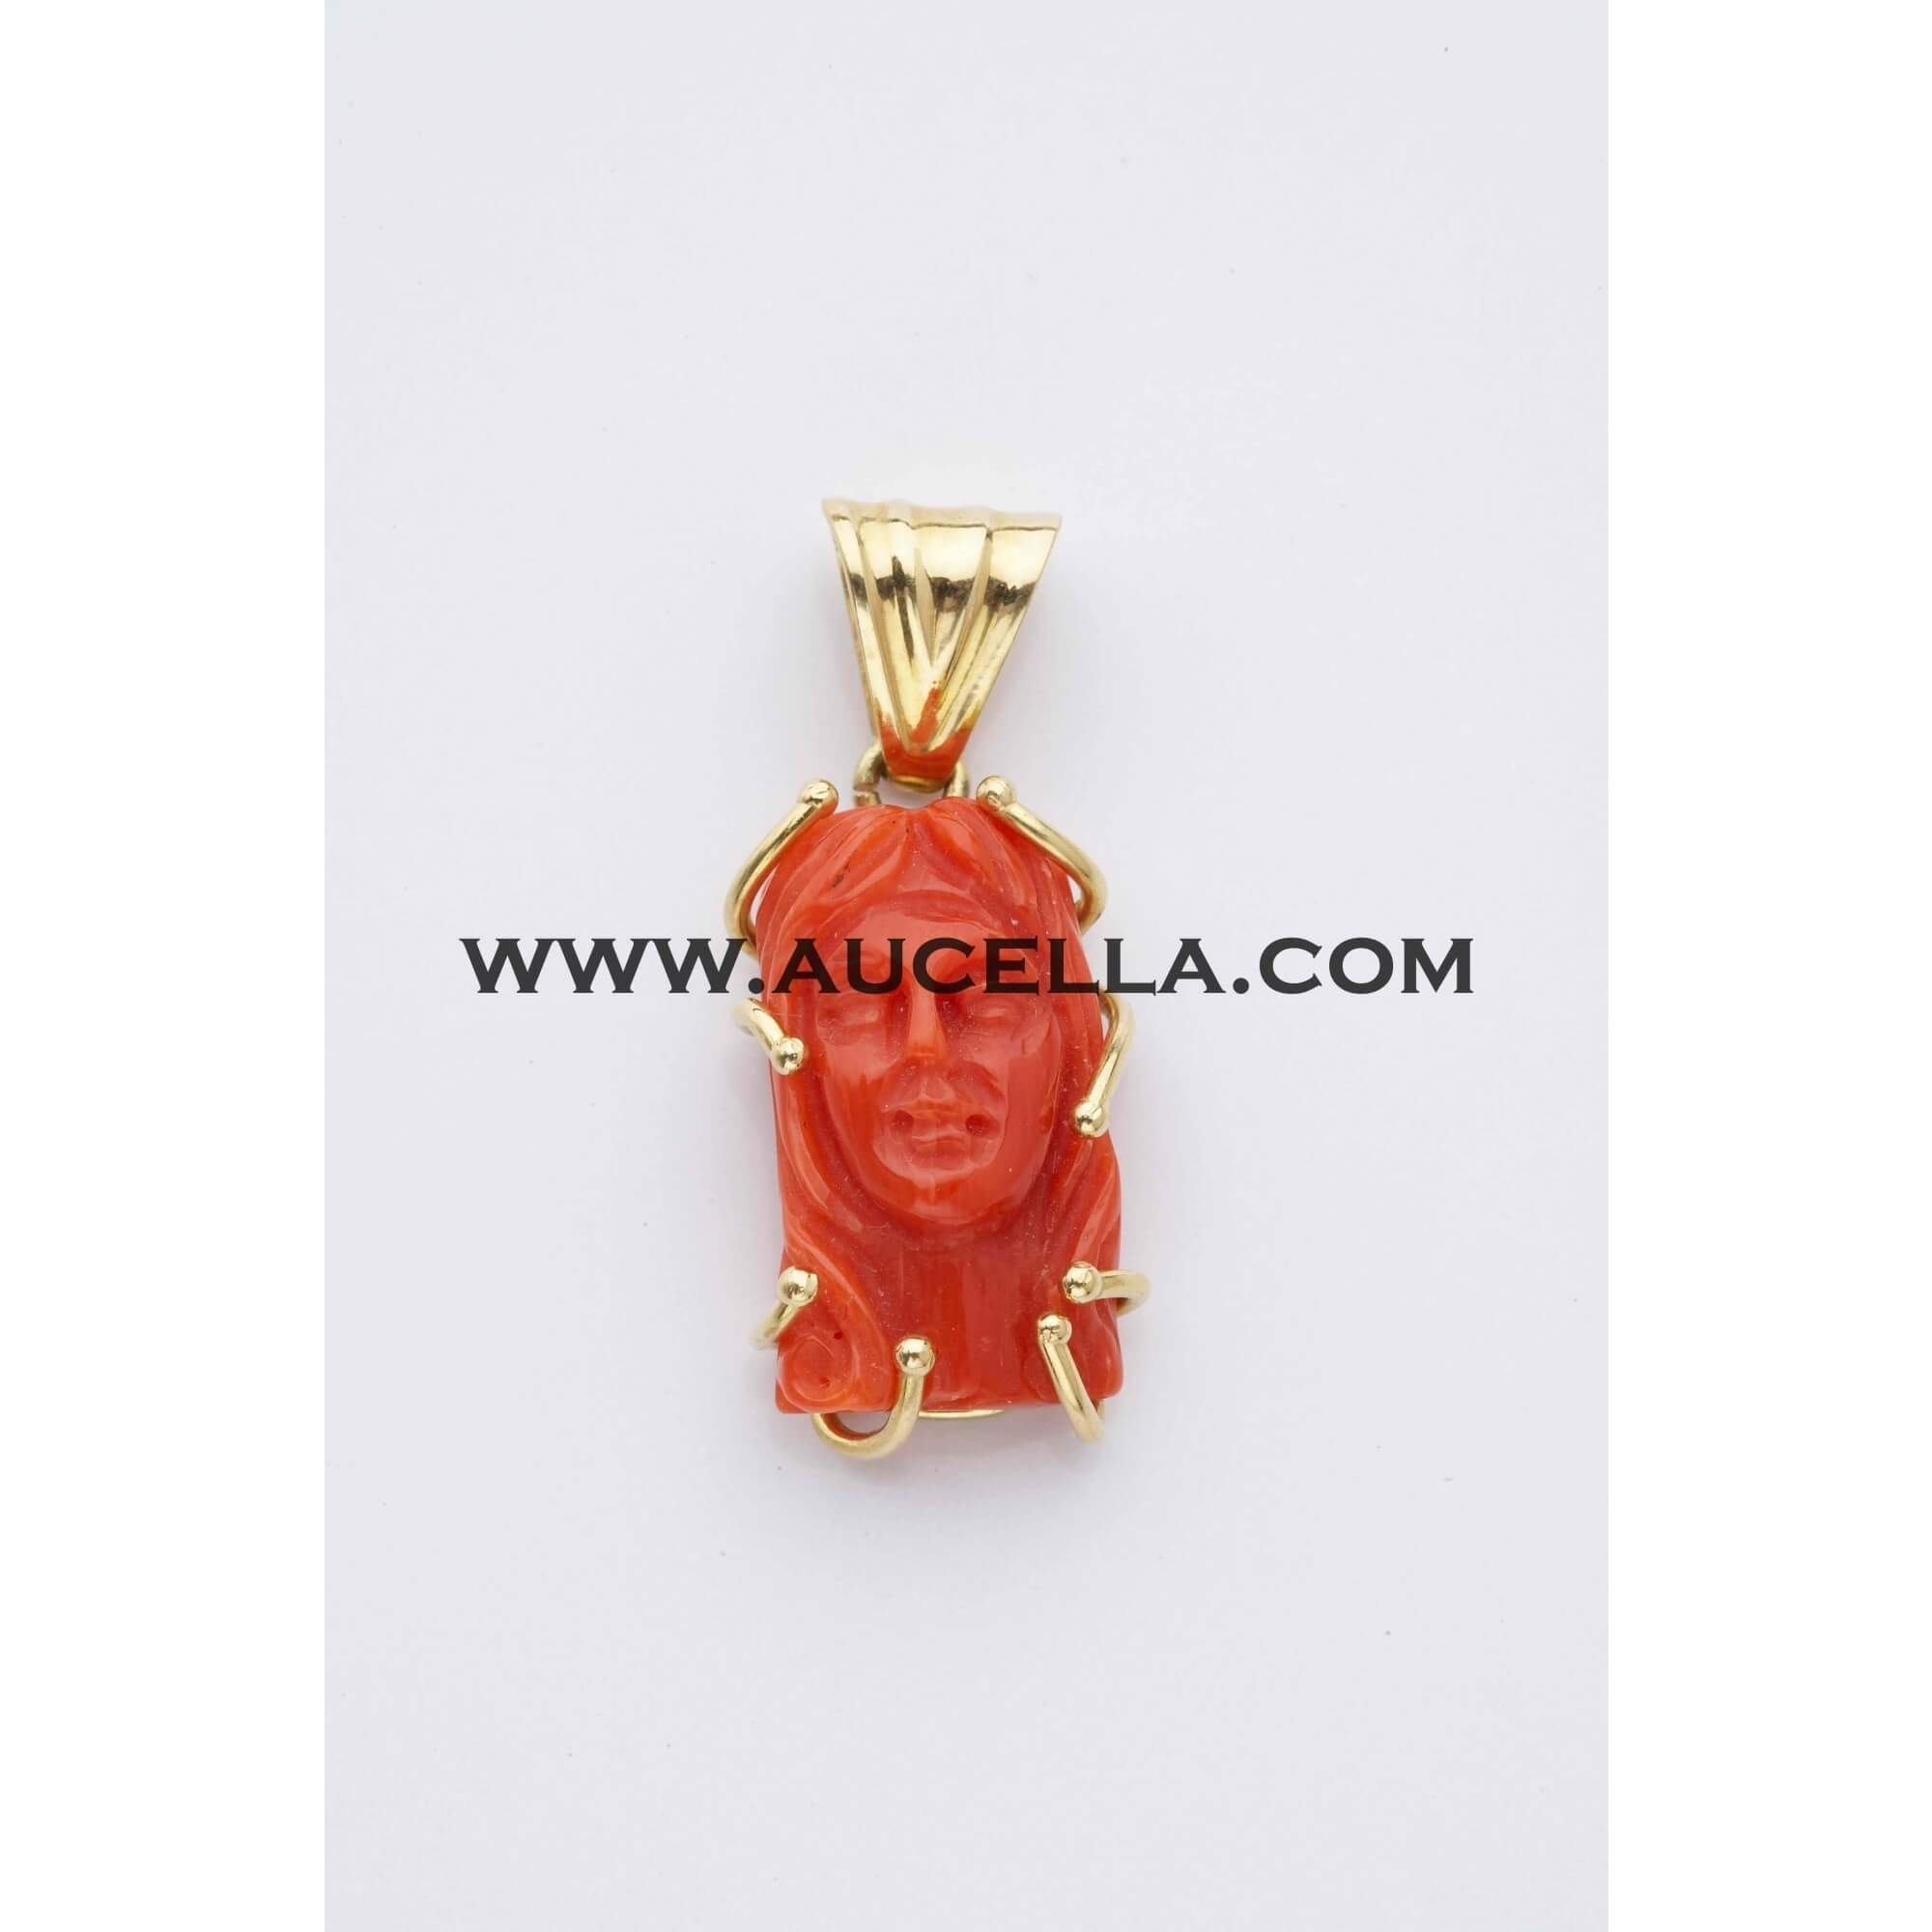 Pendant set in gold with Jesus face carving